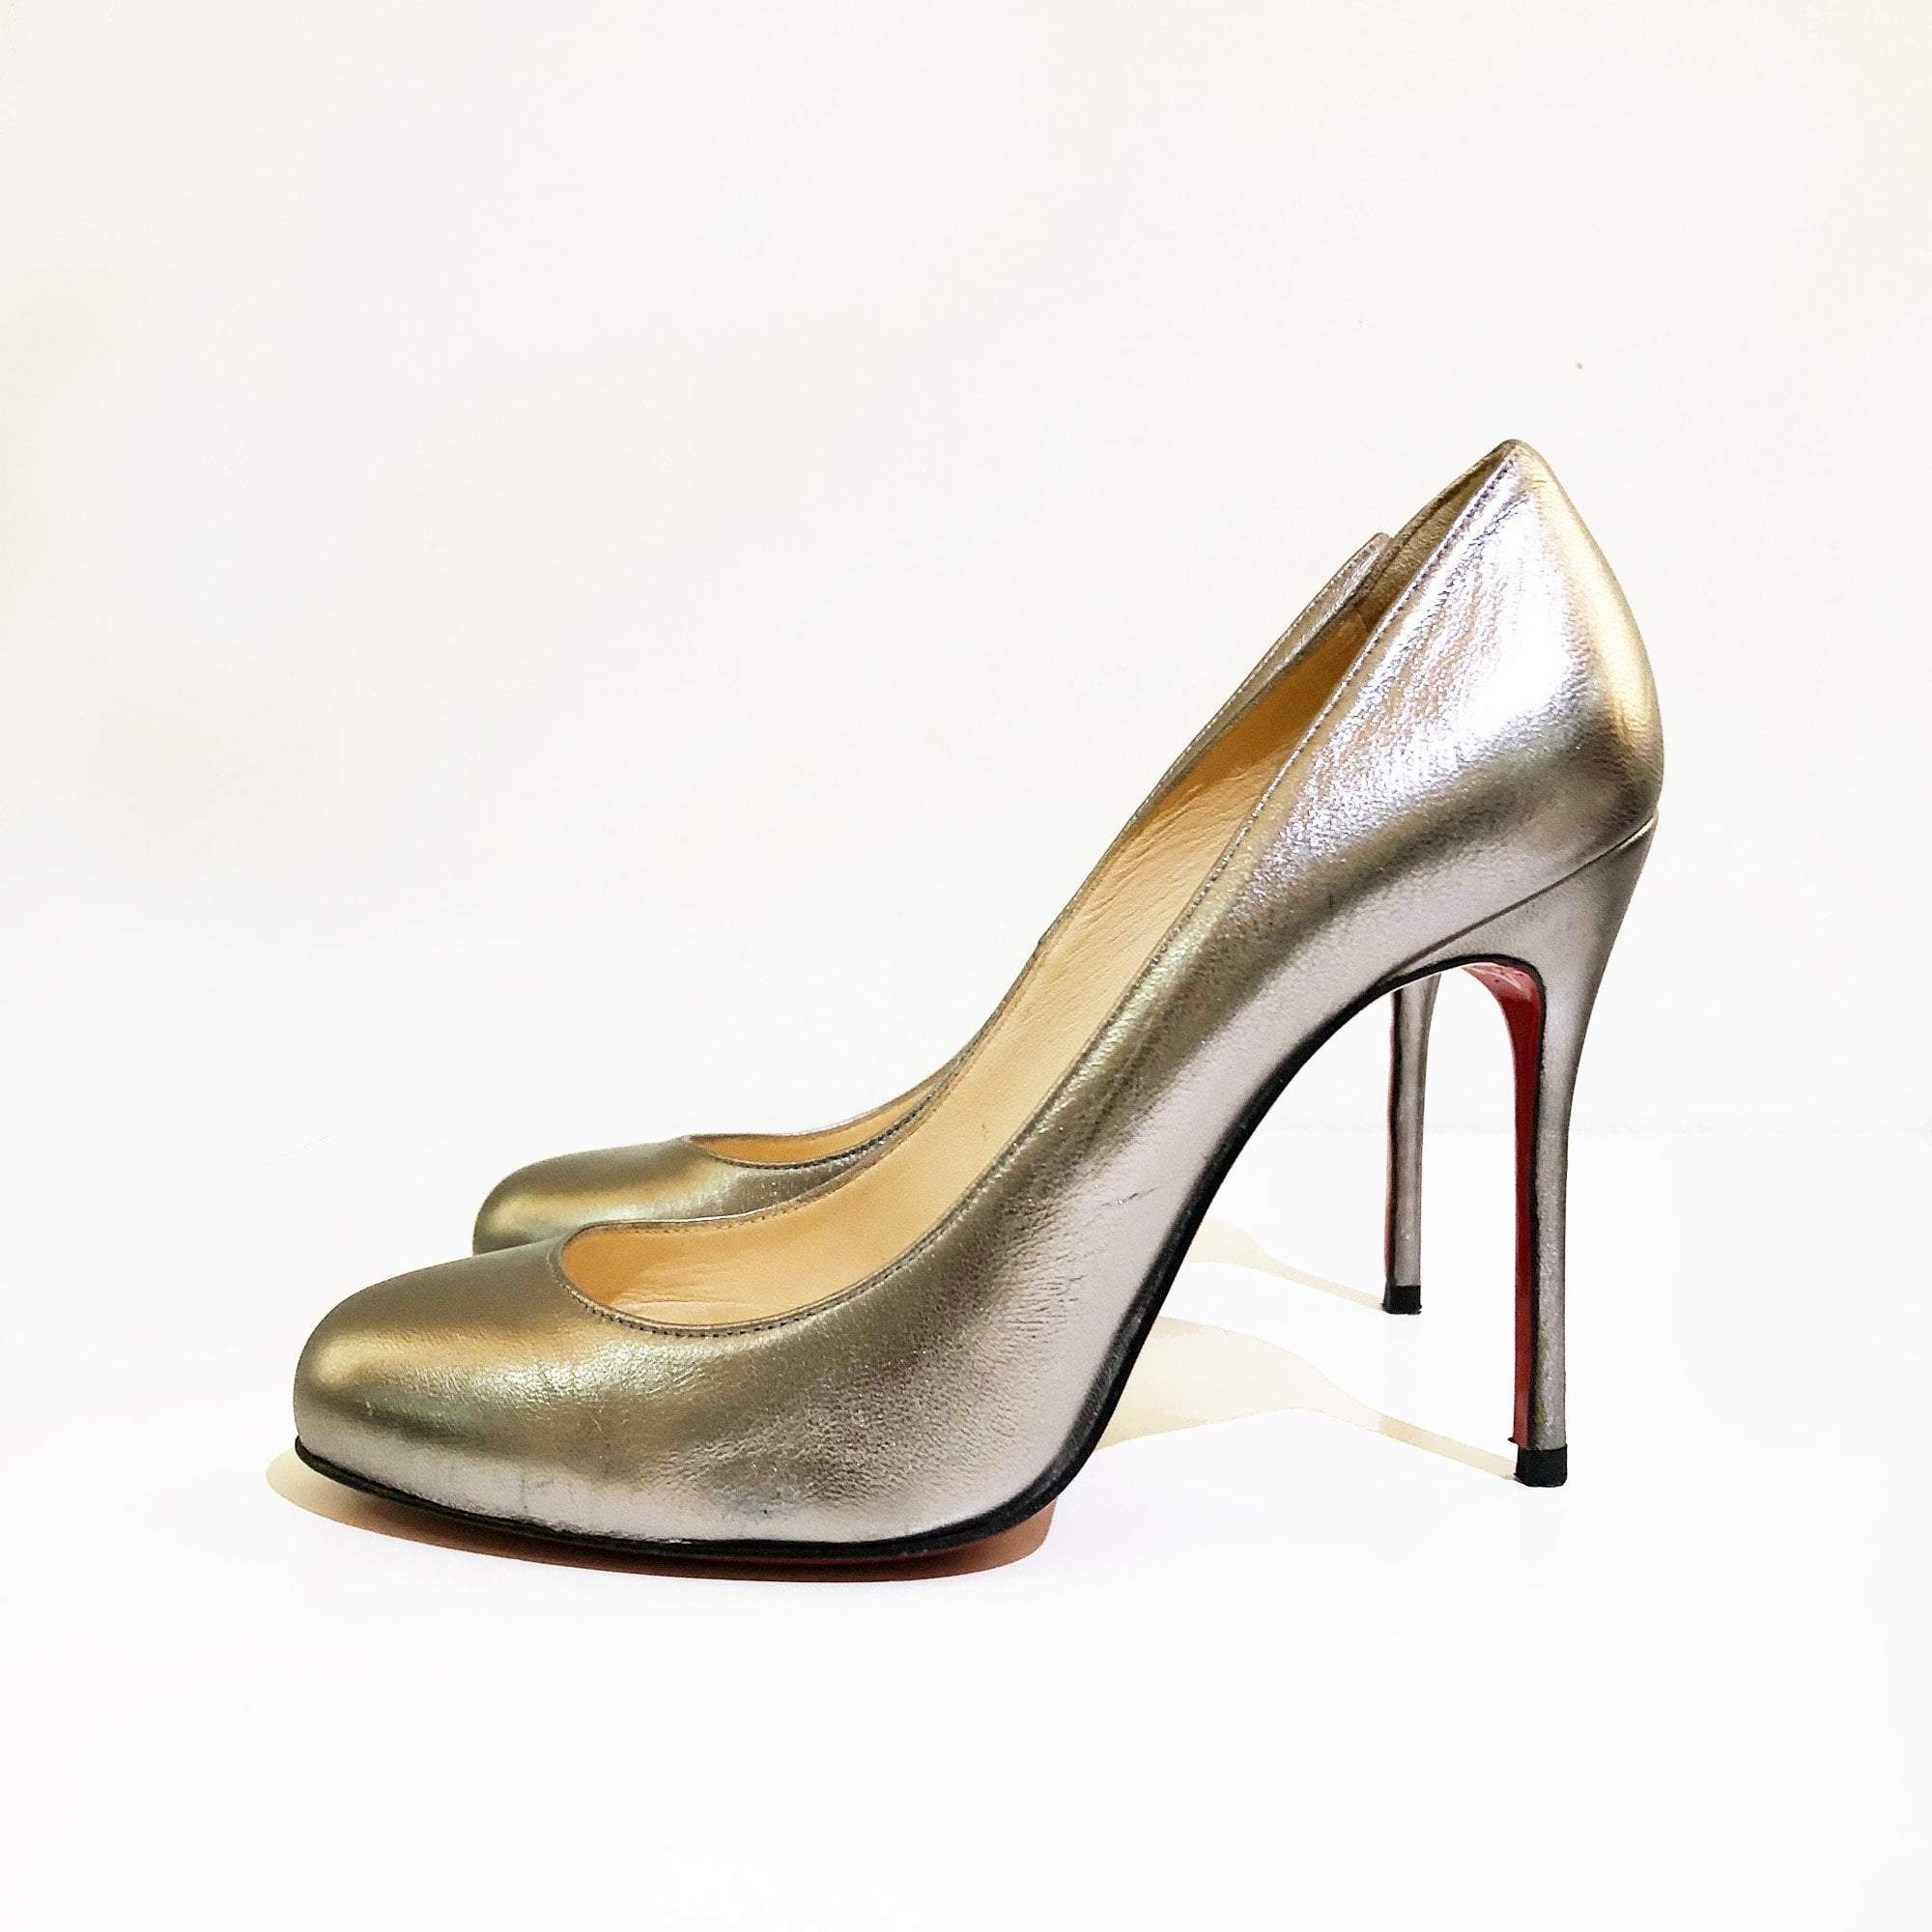 Christian Louboutin Metallic Silver Leather Pumps